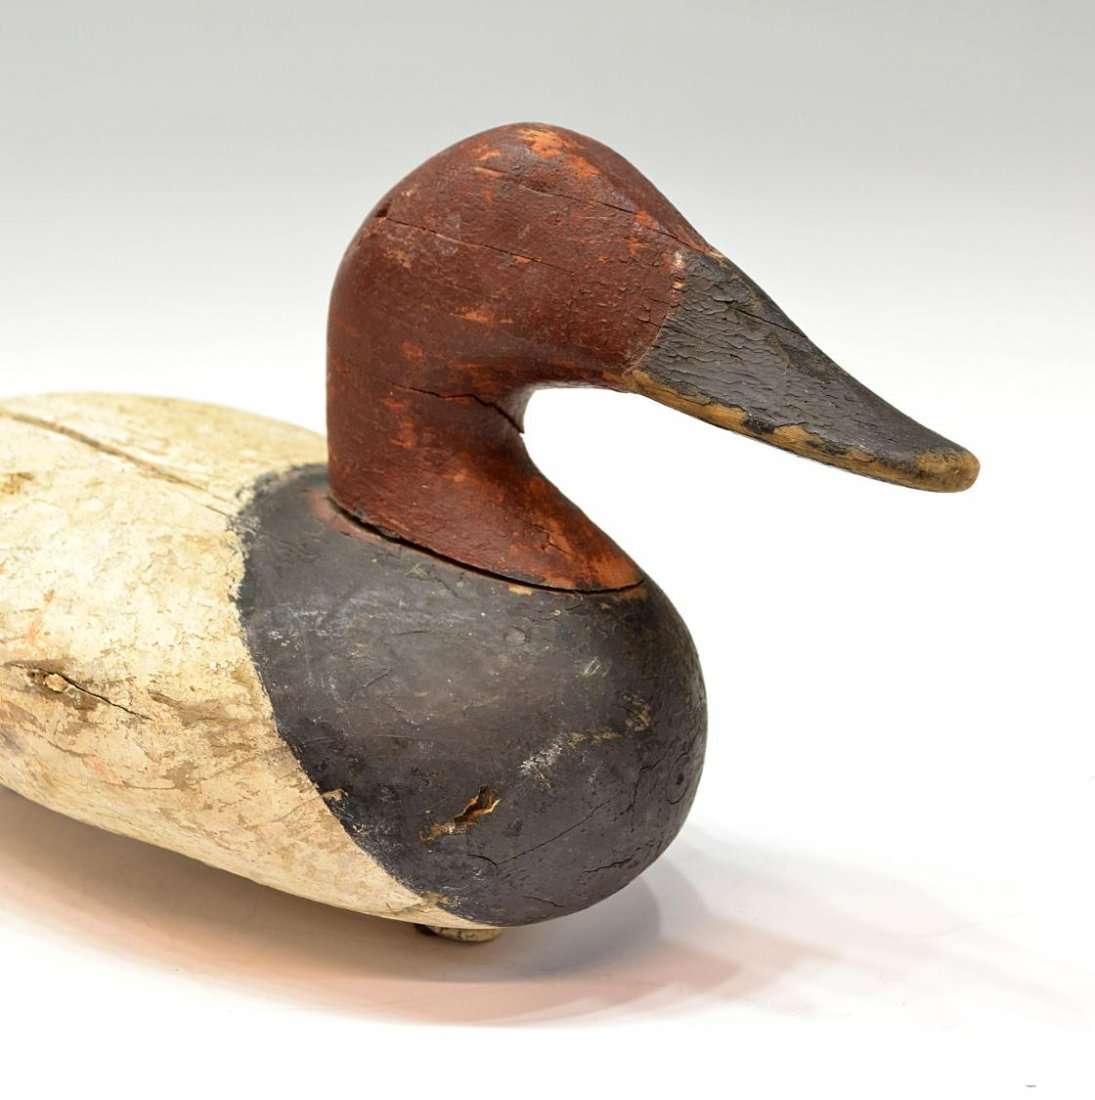 473: VINTAGE DUCK DECOY ATTRIBUTED TO MADISON MITCHELL - 2